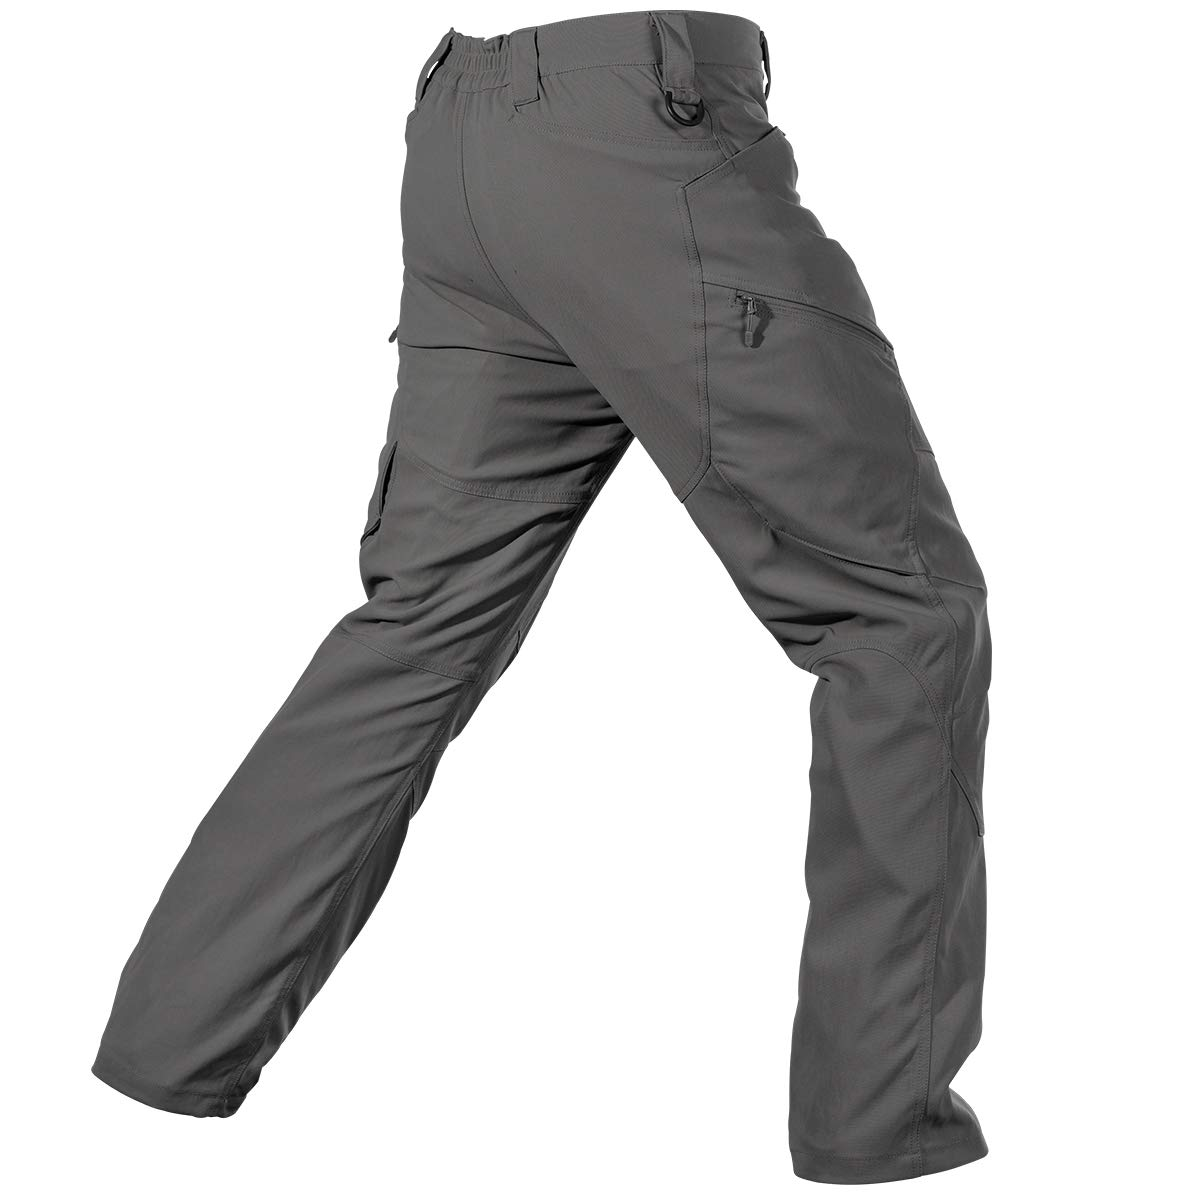 FREE SOLDIER Men's Tactical Pants side